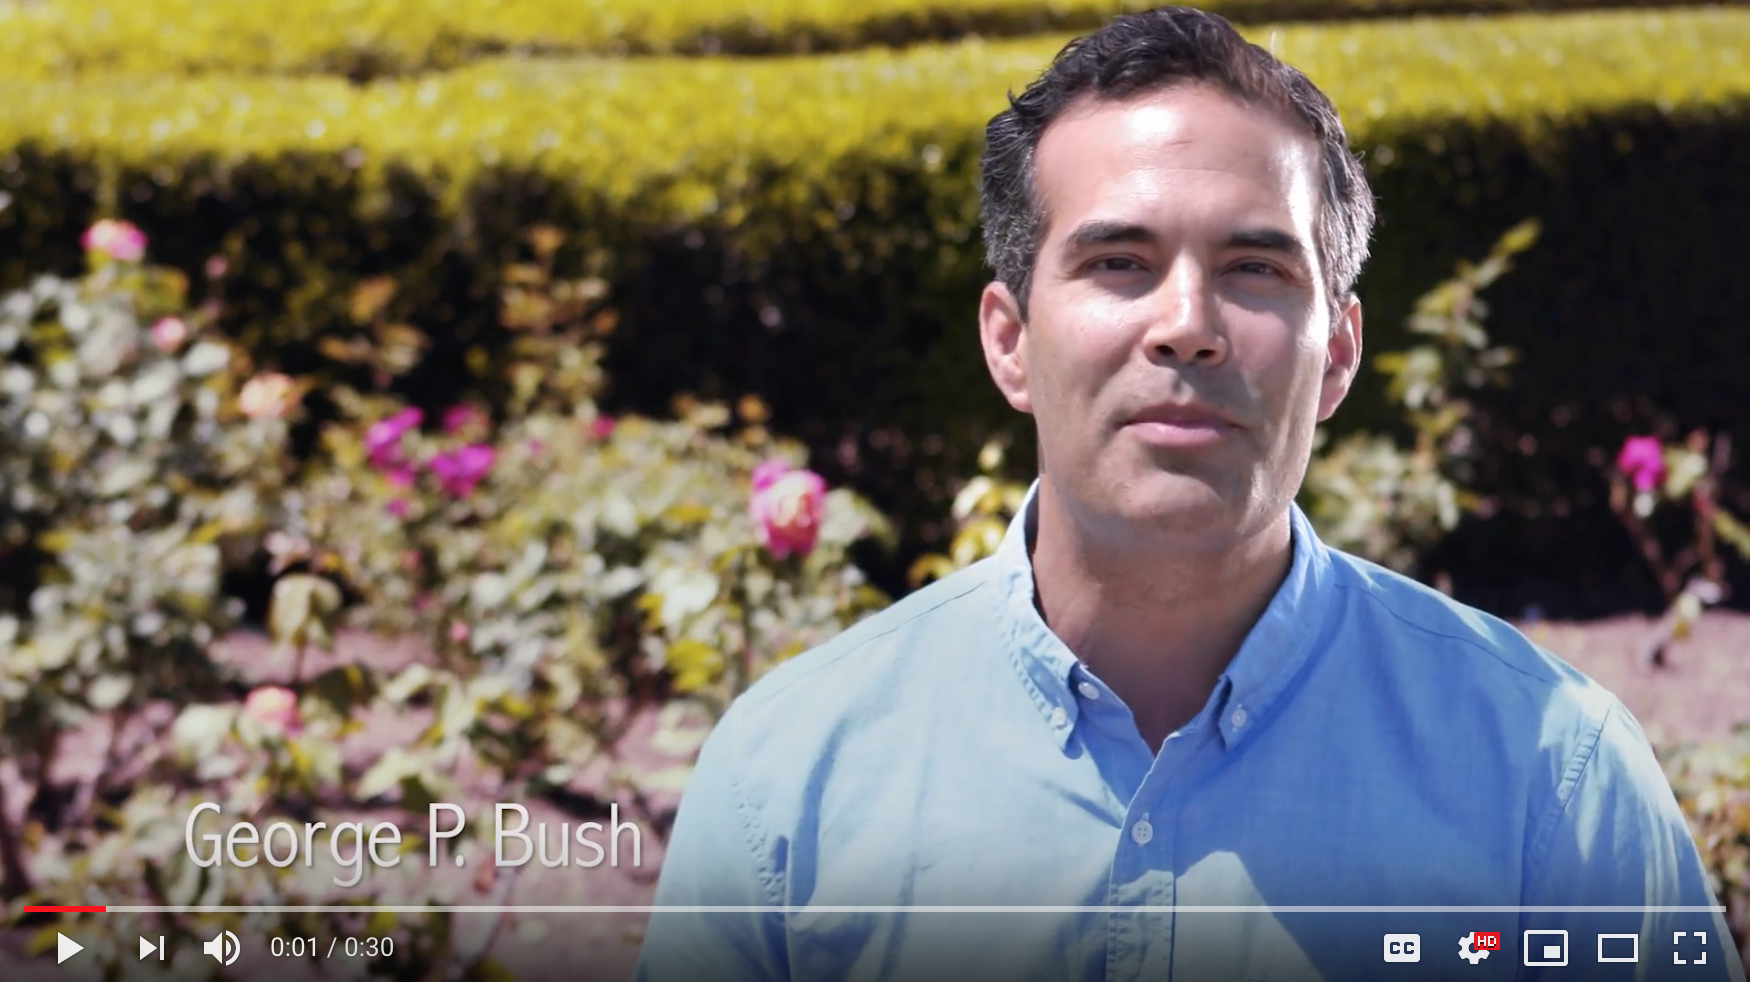 Geroge P. Bush pledges to plant smart